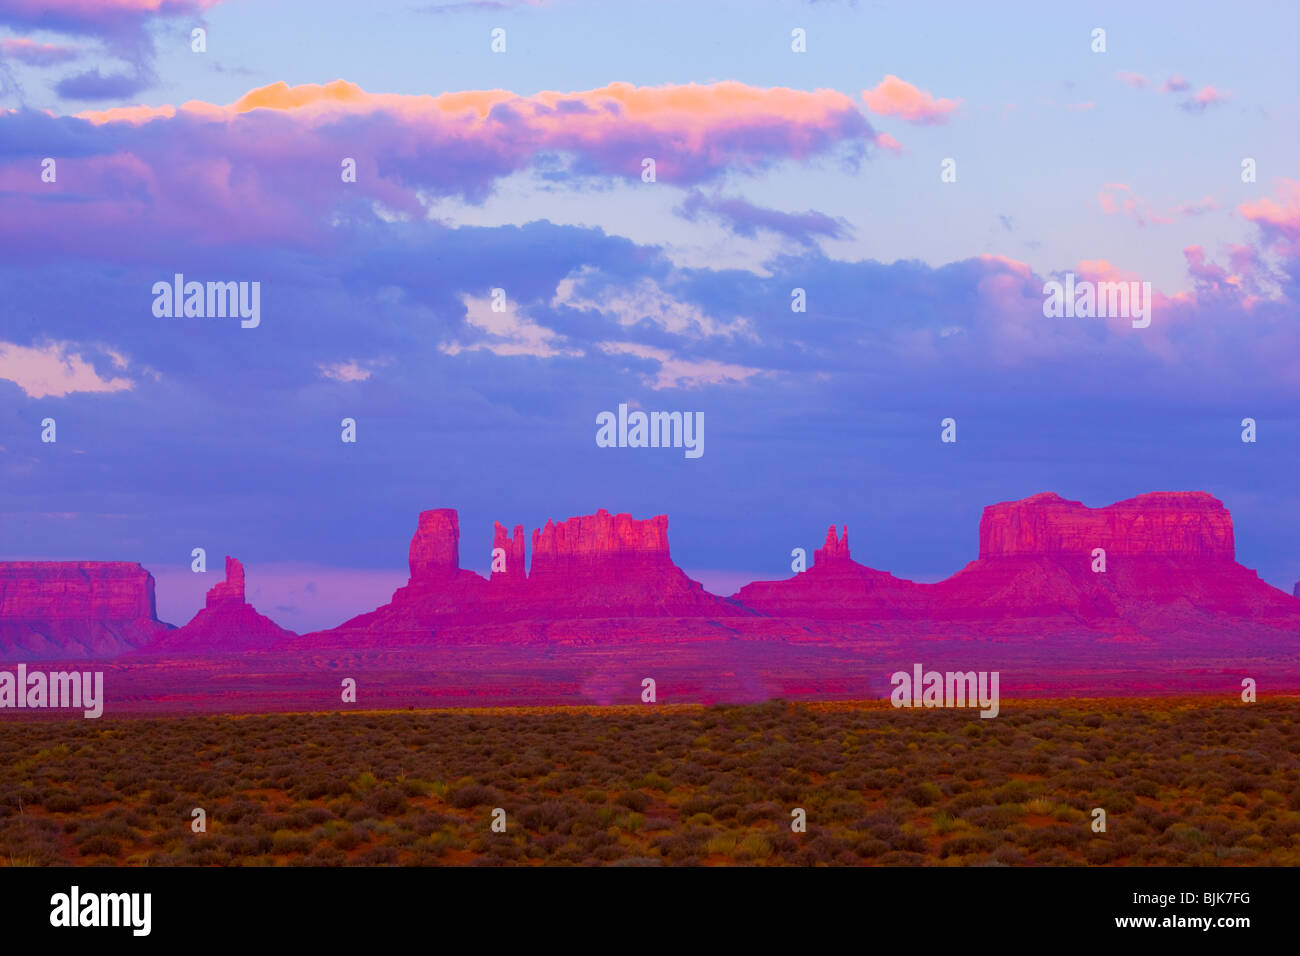 Monument Valley Tribal Park, Utah, The Bear, Stagecoach and other pinnacles, Sunrise - Stock Image